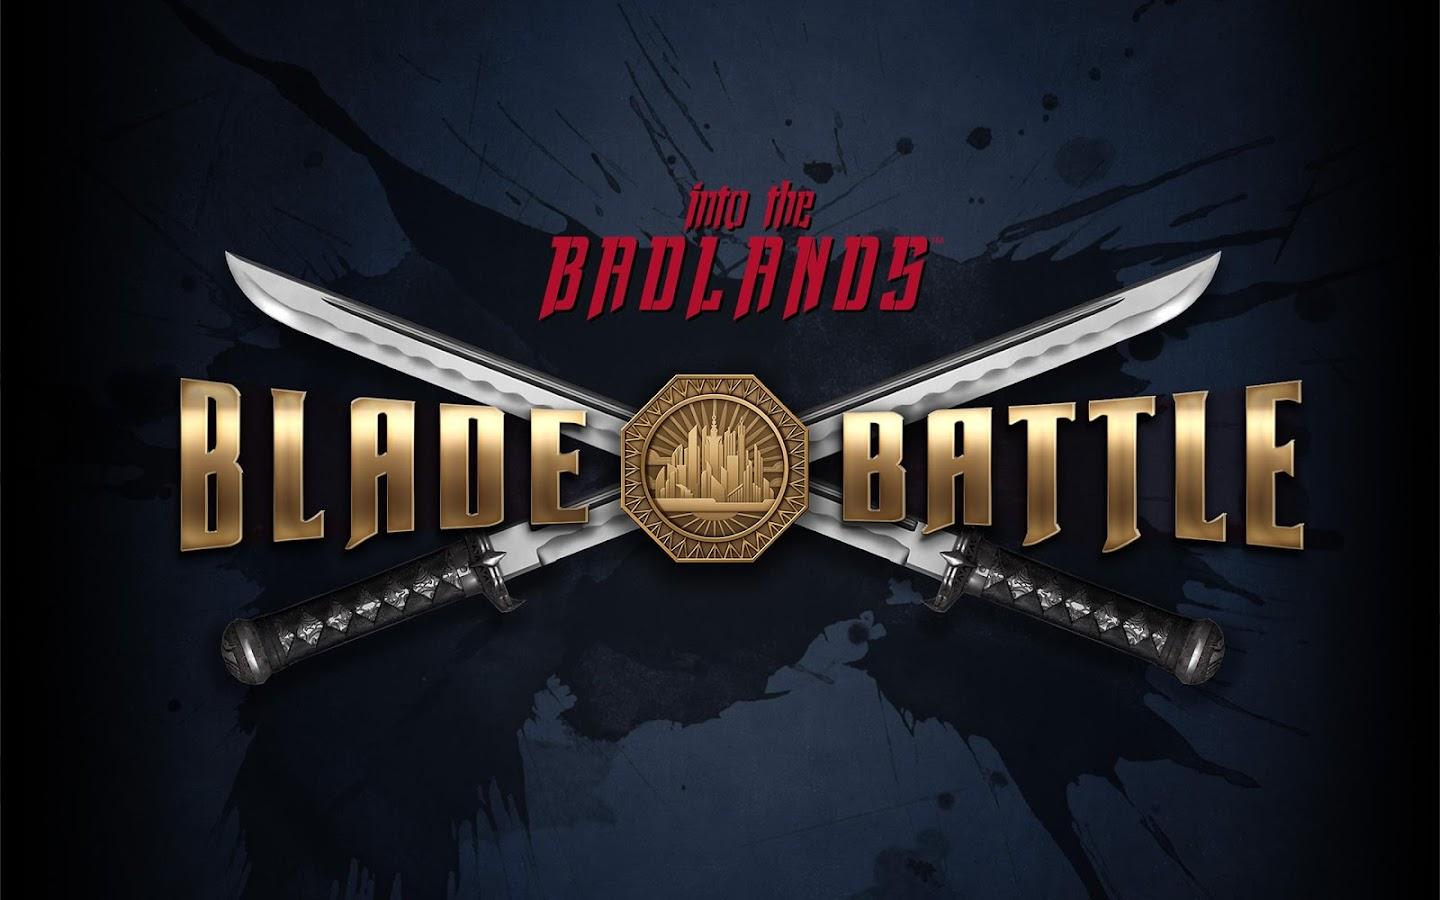 Into the Badlands Blade Battle: captura de pantalla